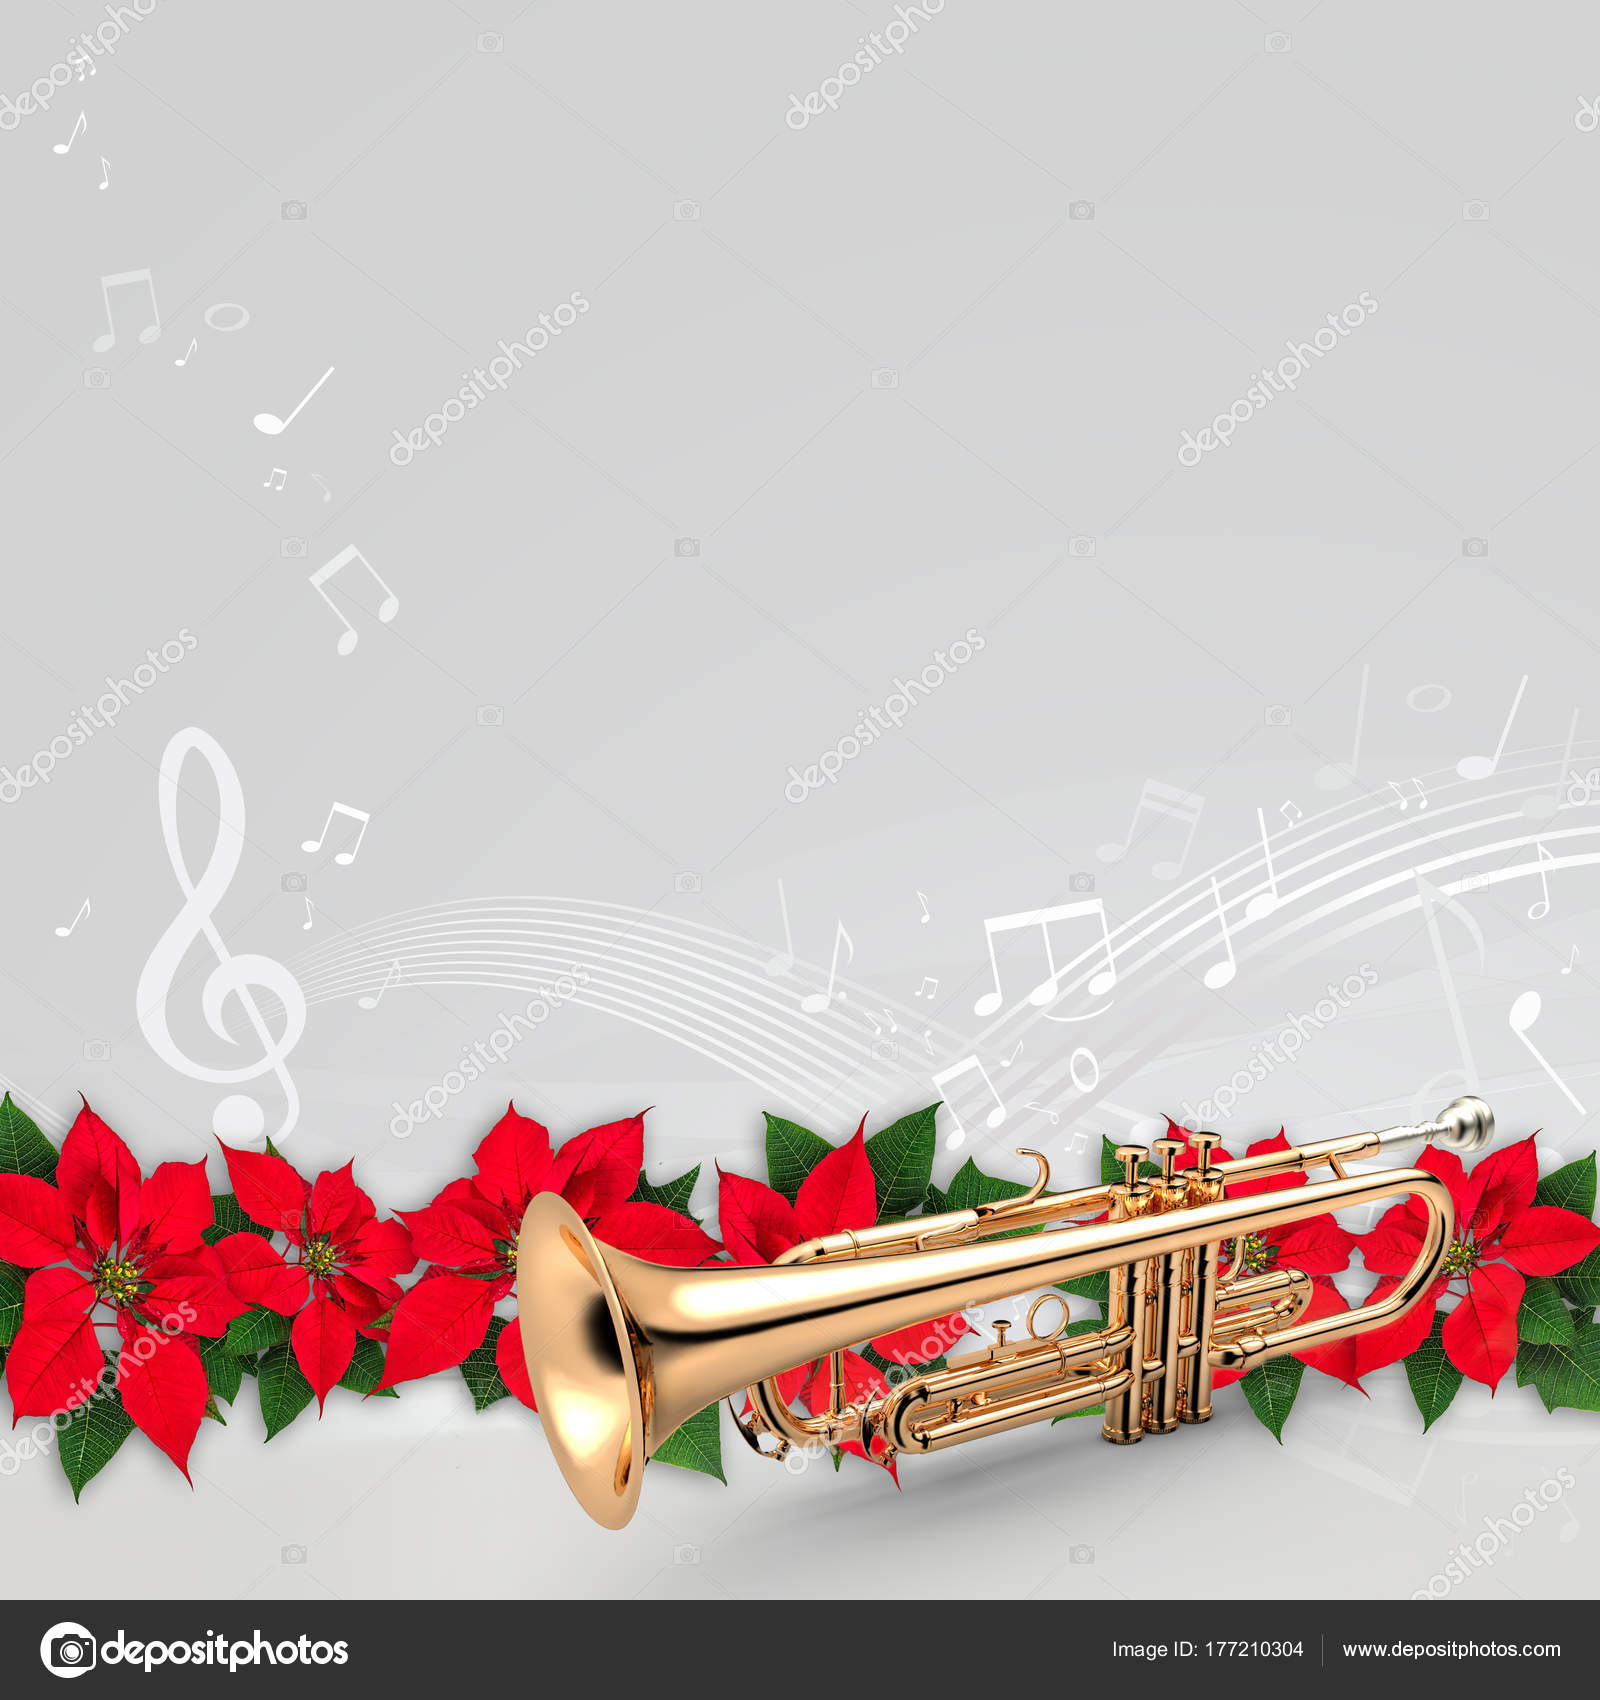 Christmas Trumpet Images.Trumpet With Red Poinsettia Flower Christmas Ornament